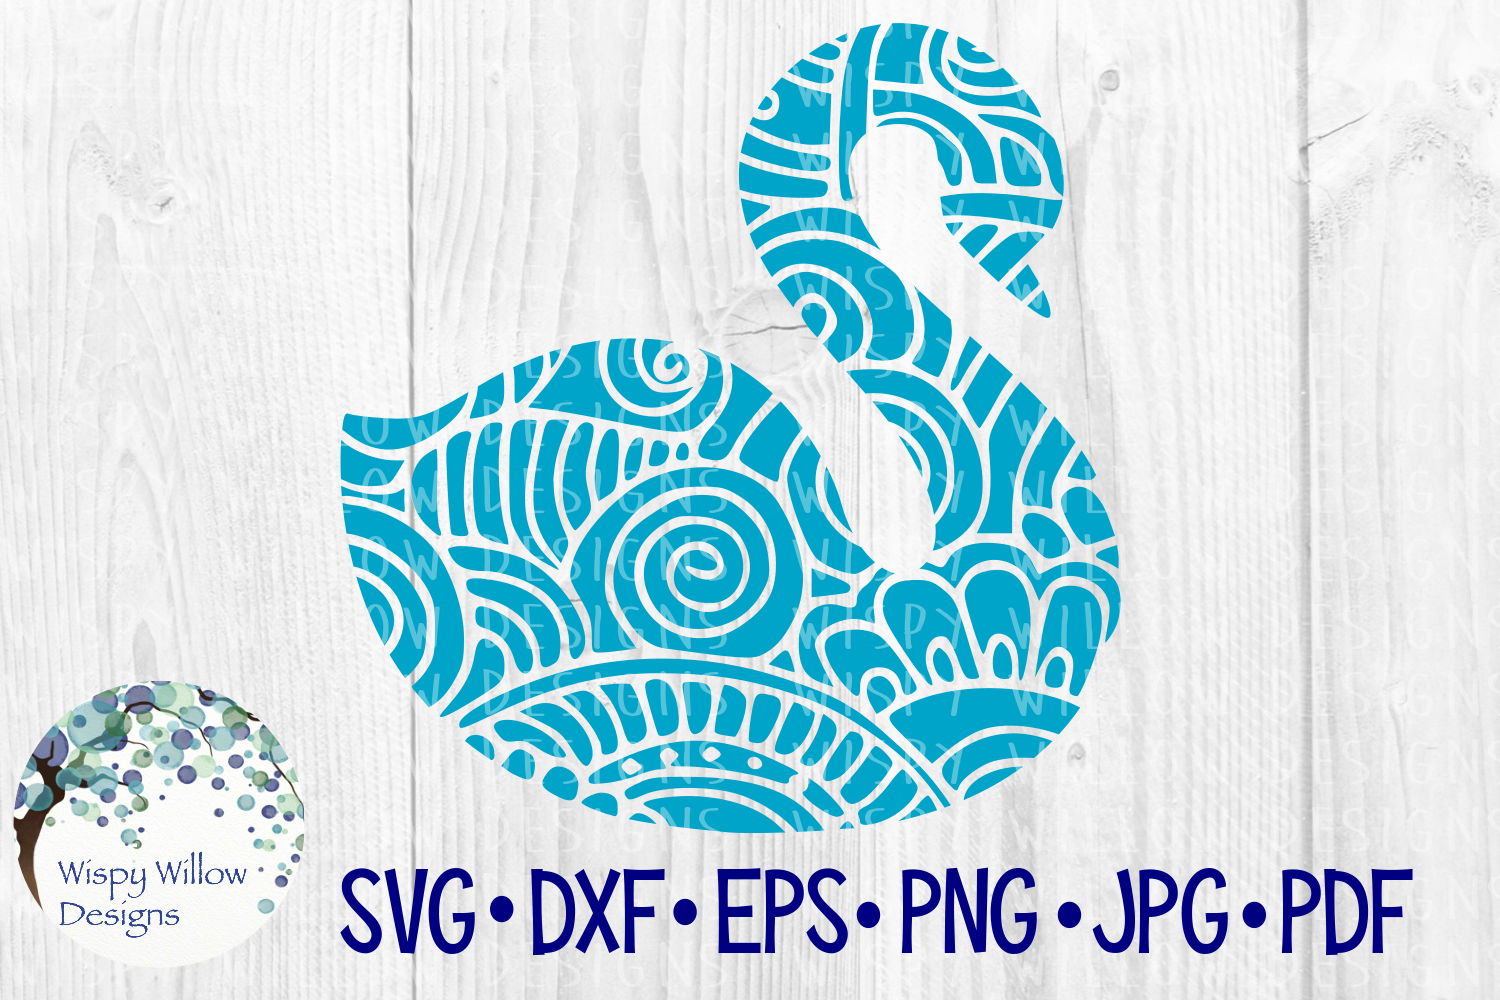 Download Free Swan Zentangle Bird Animal Graphic By Wispywillowdesigns for Cricut Explore, Silhouette and other cutting machines.